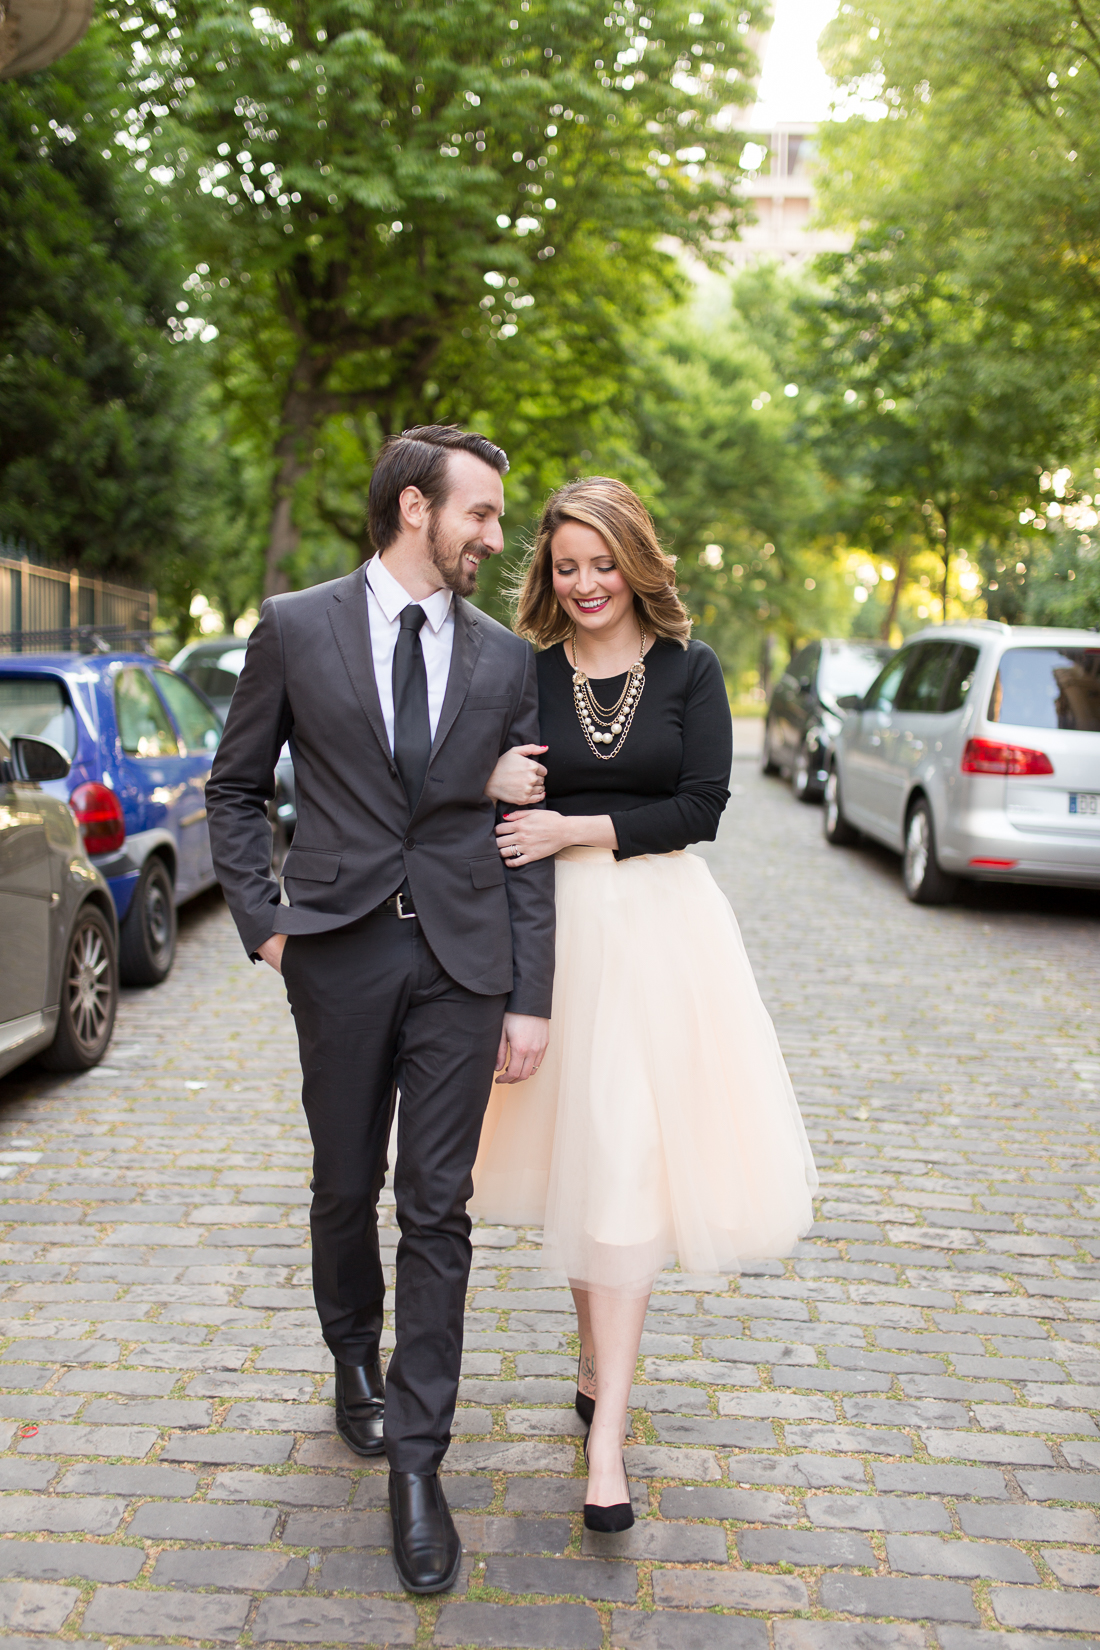 romantic-fun-honeymoon-ideas-in-paris-photo-shoot-1